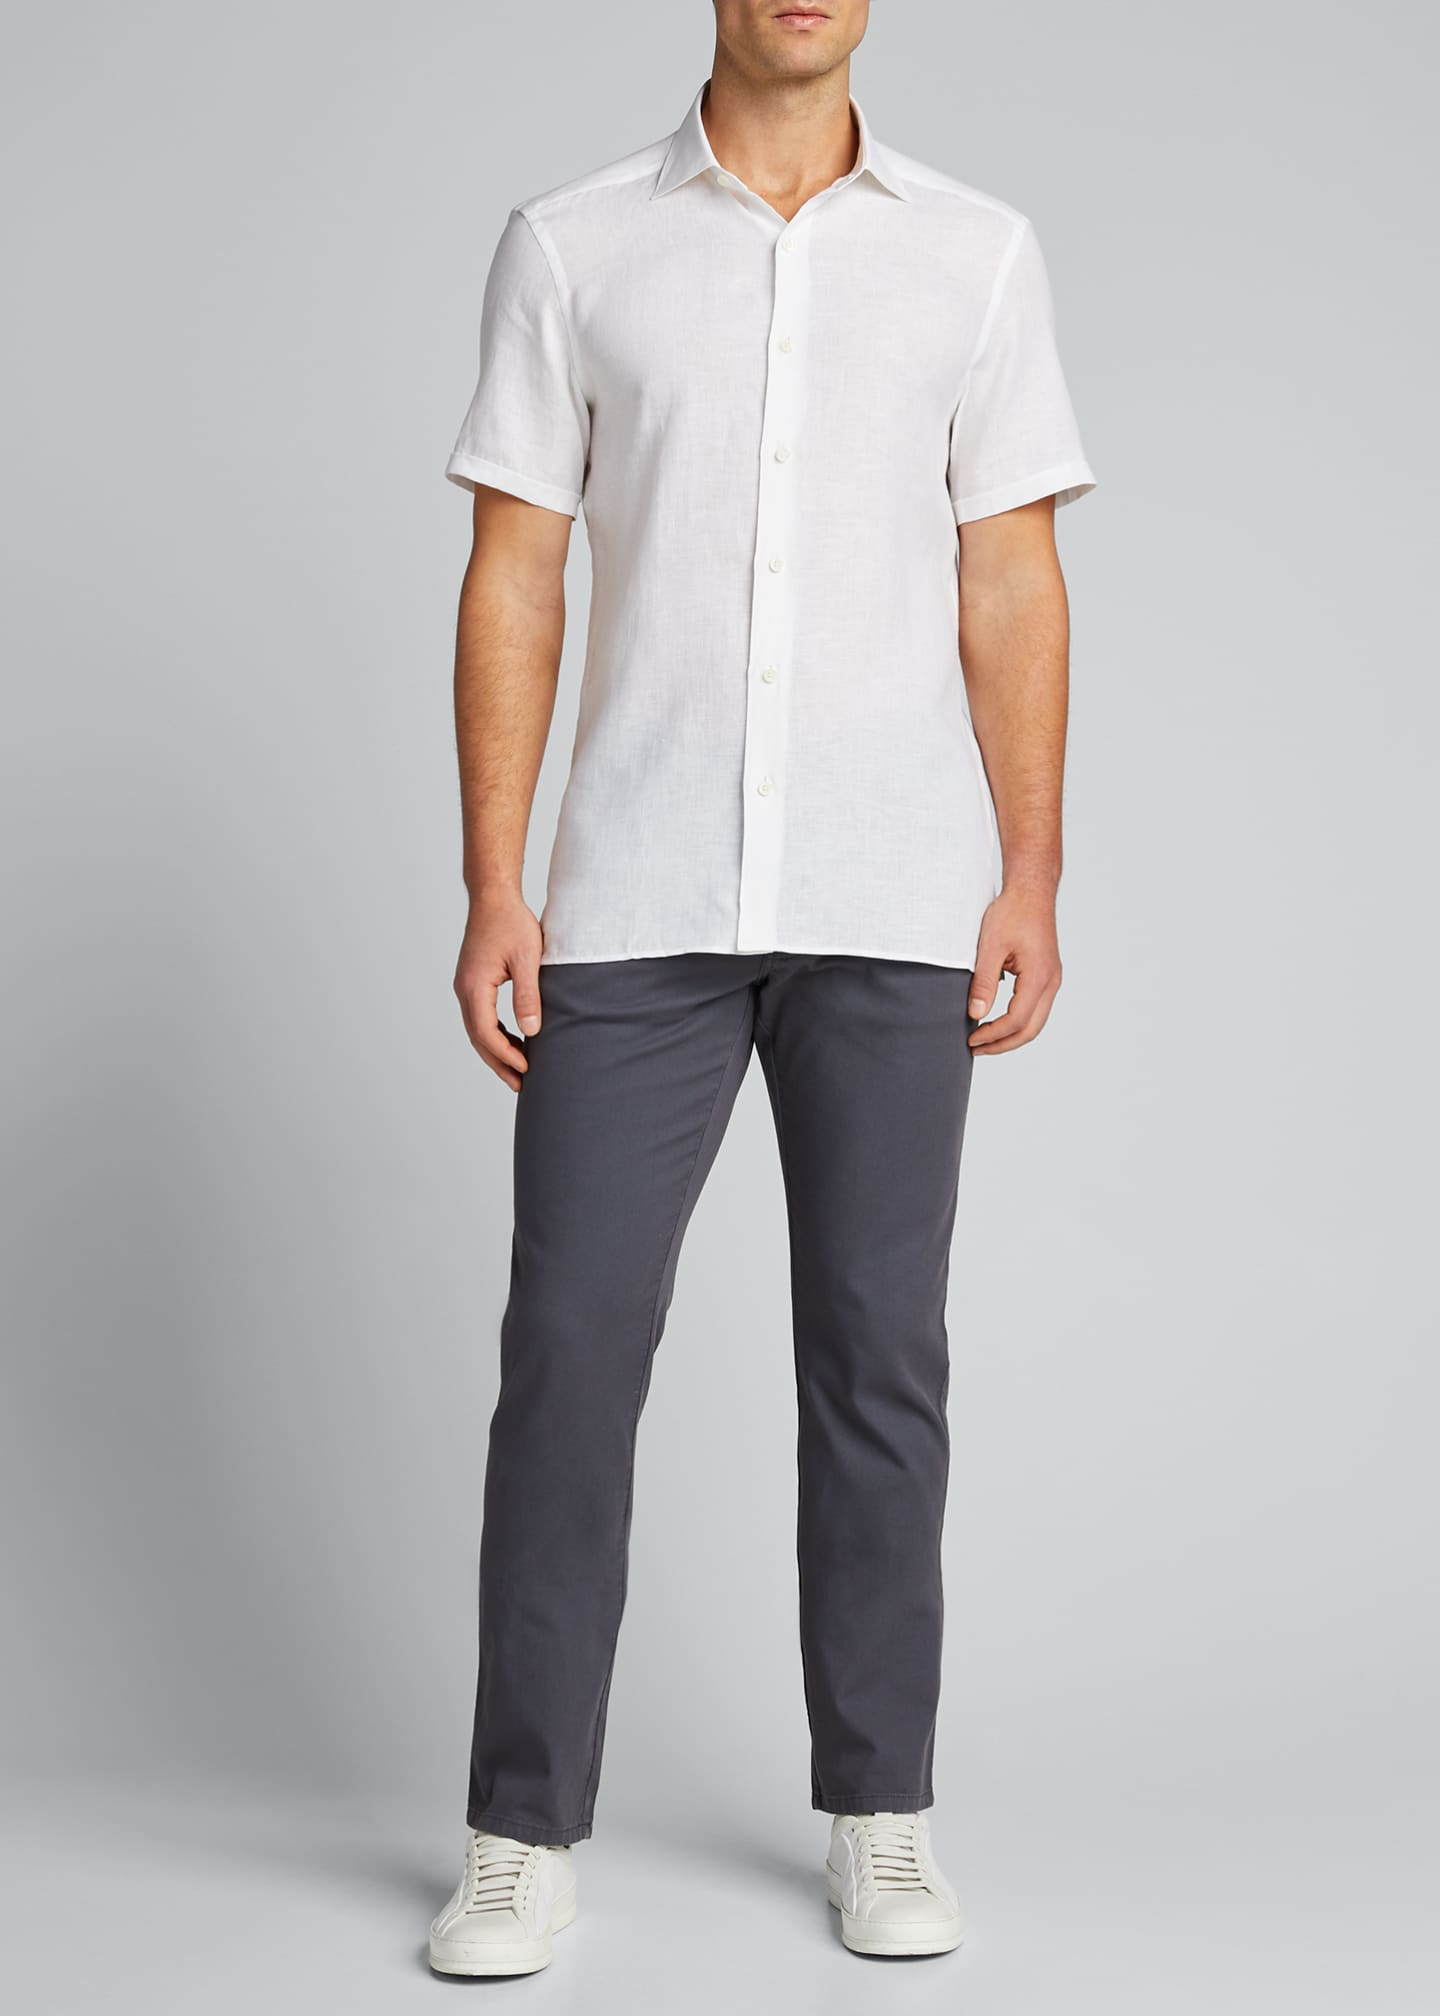 Ermenegildo Zegna Men's Solid Linen Short-Sleeve Sport Shirt